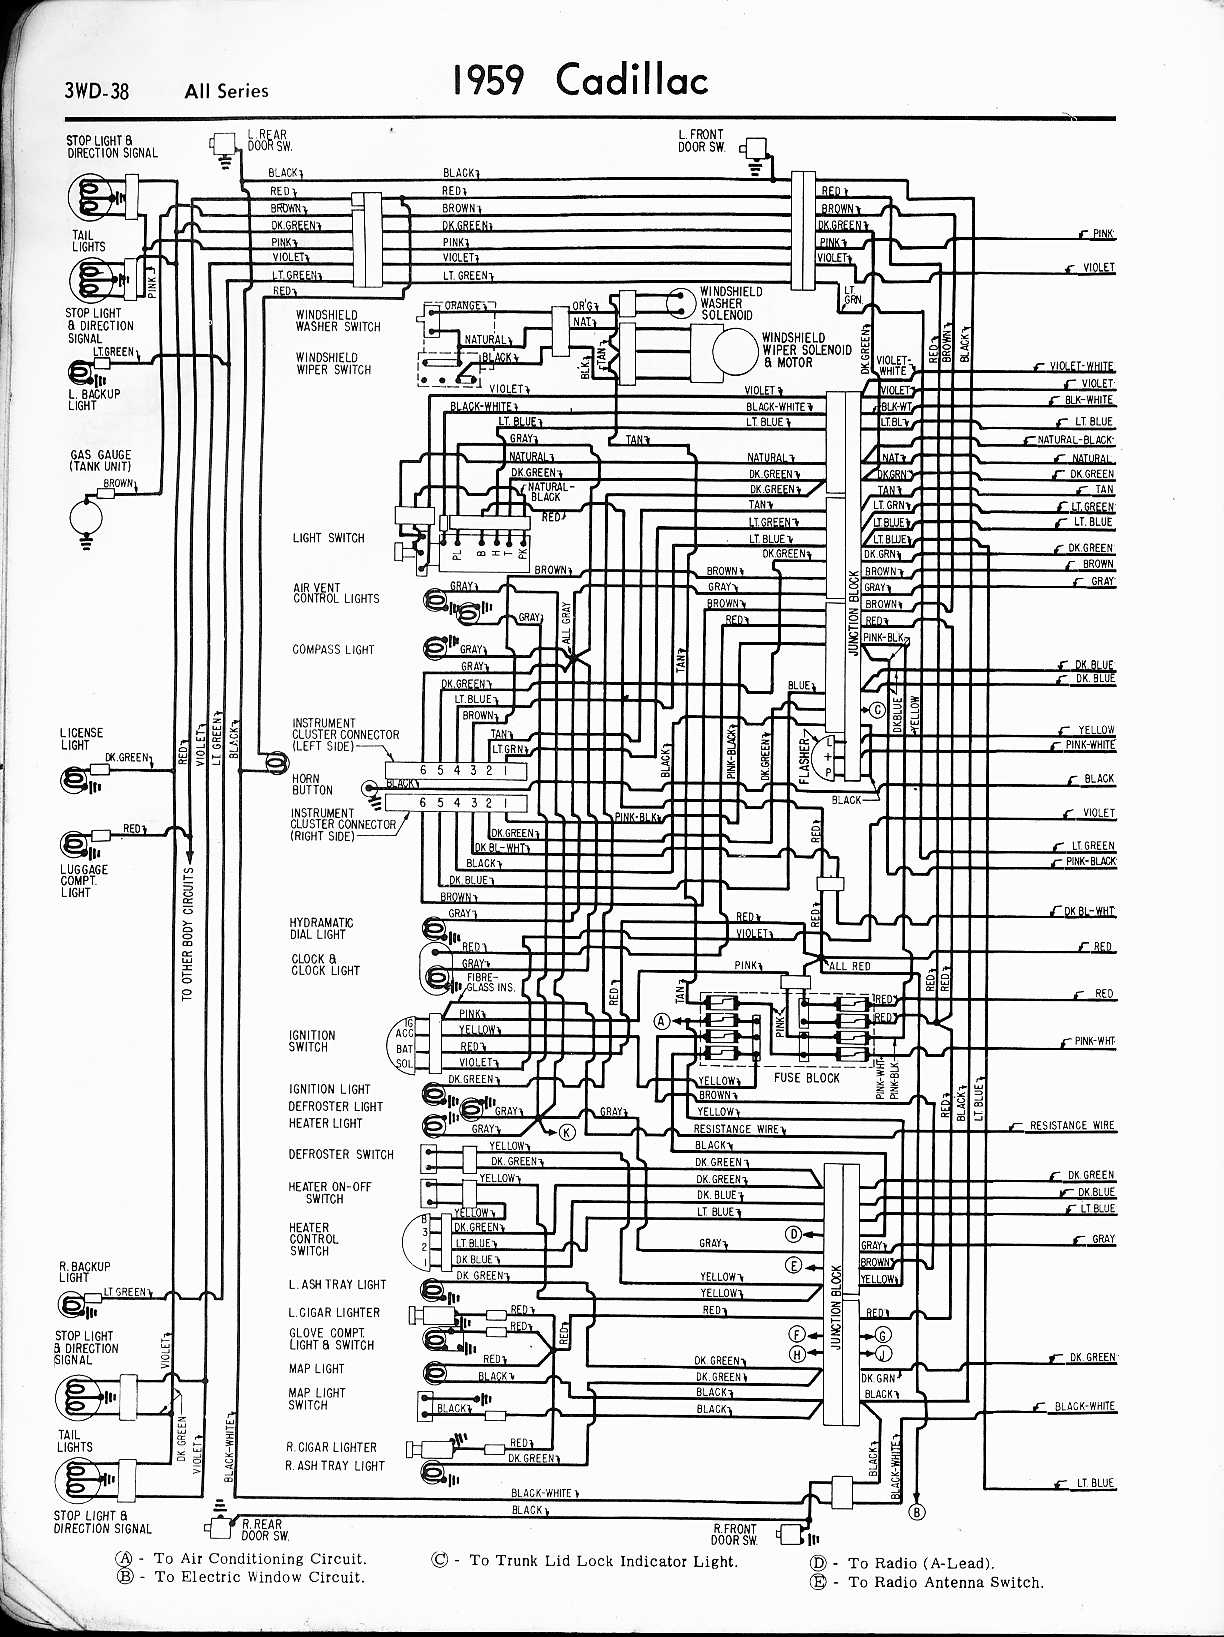 1959 Willys Wagon Wiring Diagram | Wiring Liry on